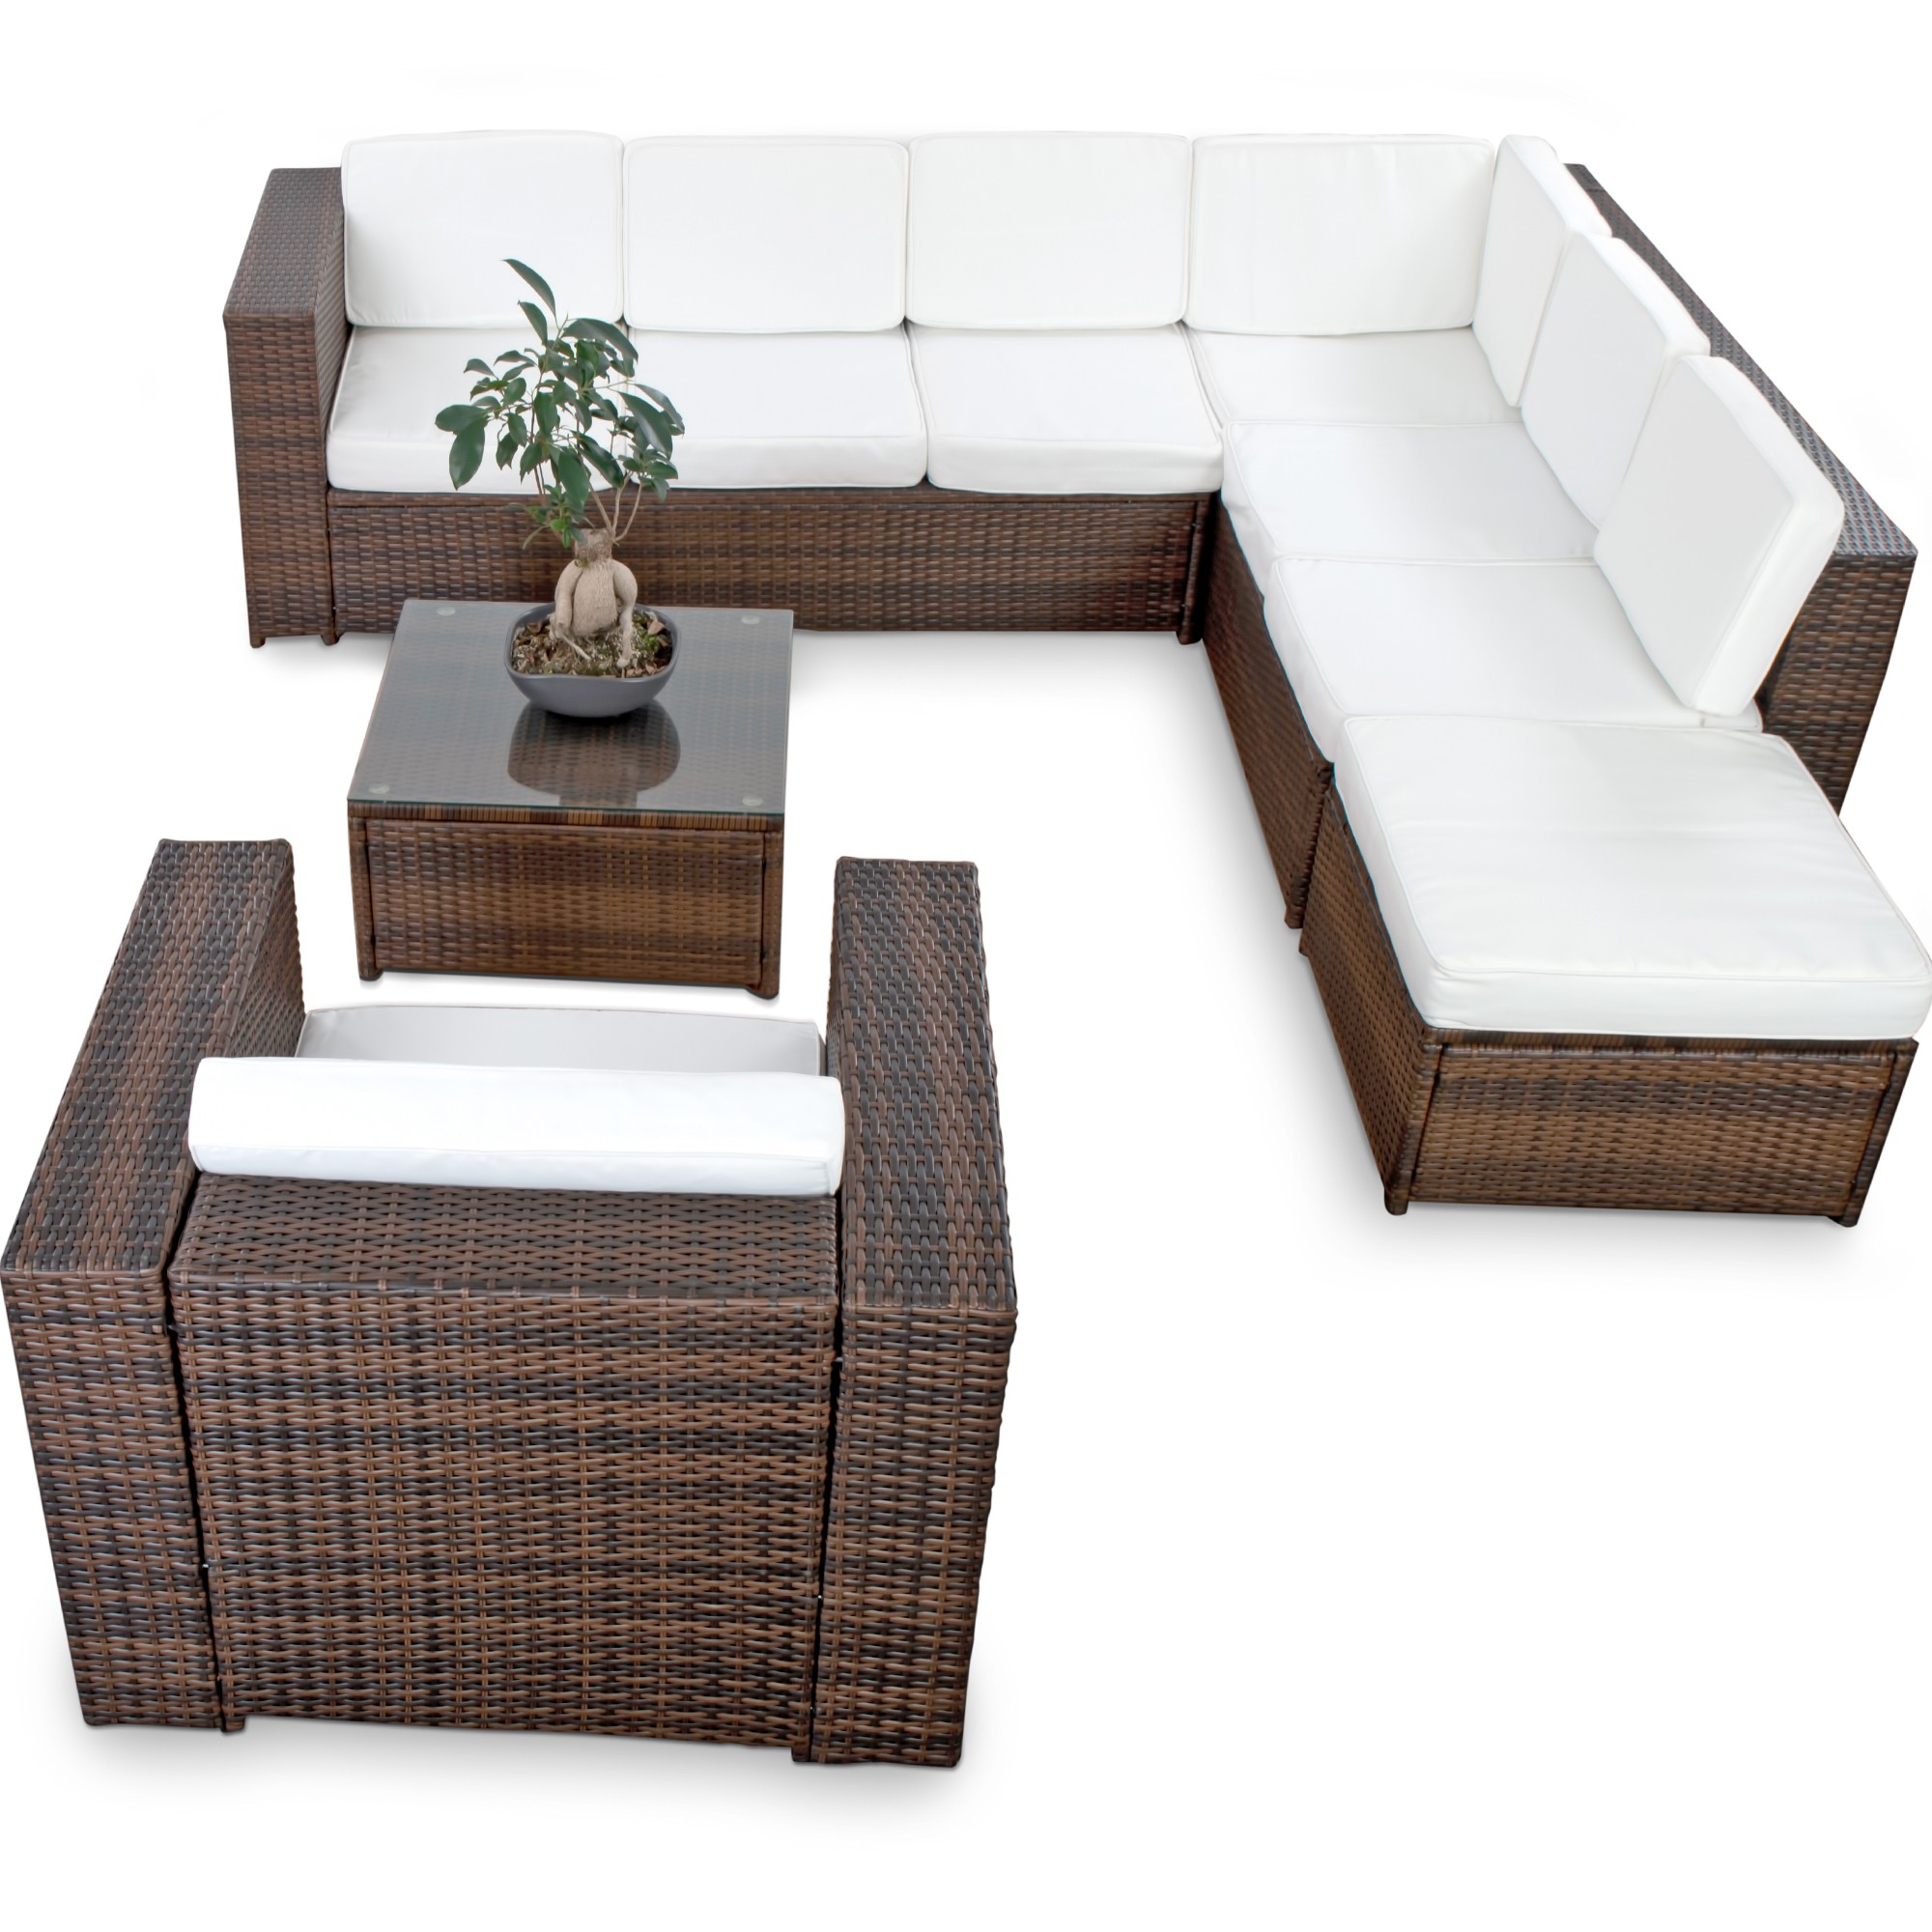 polyrattan lounge set g nstig lounge set polyrattan kaufen. Black Bedroom Furniture Sets. Home Design Ideas